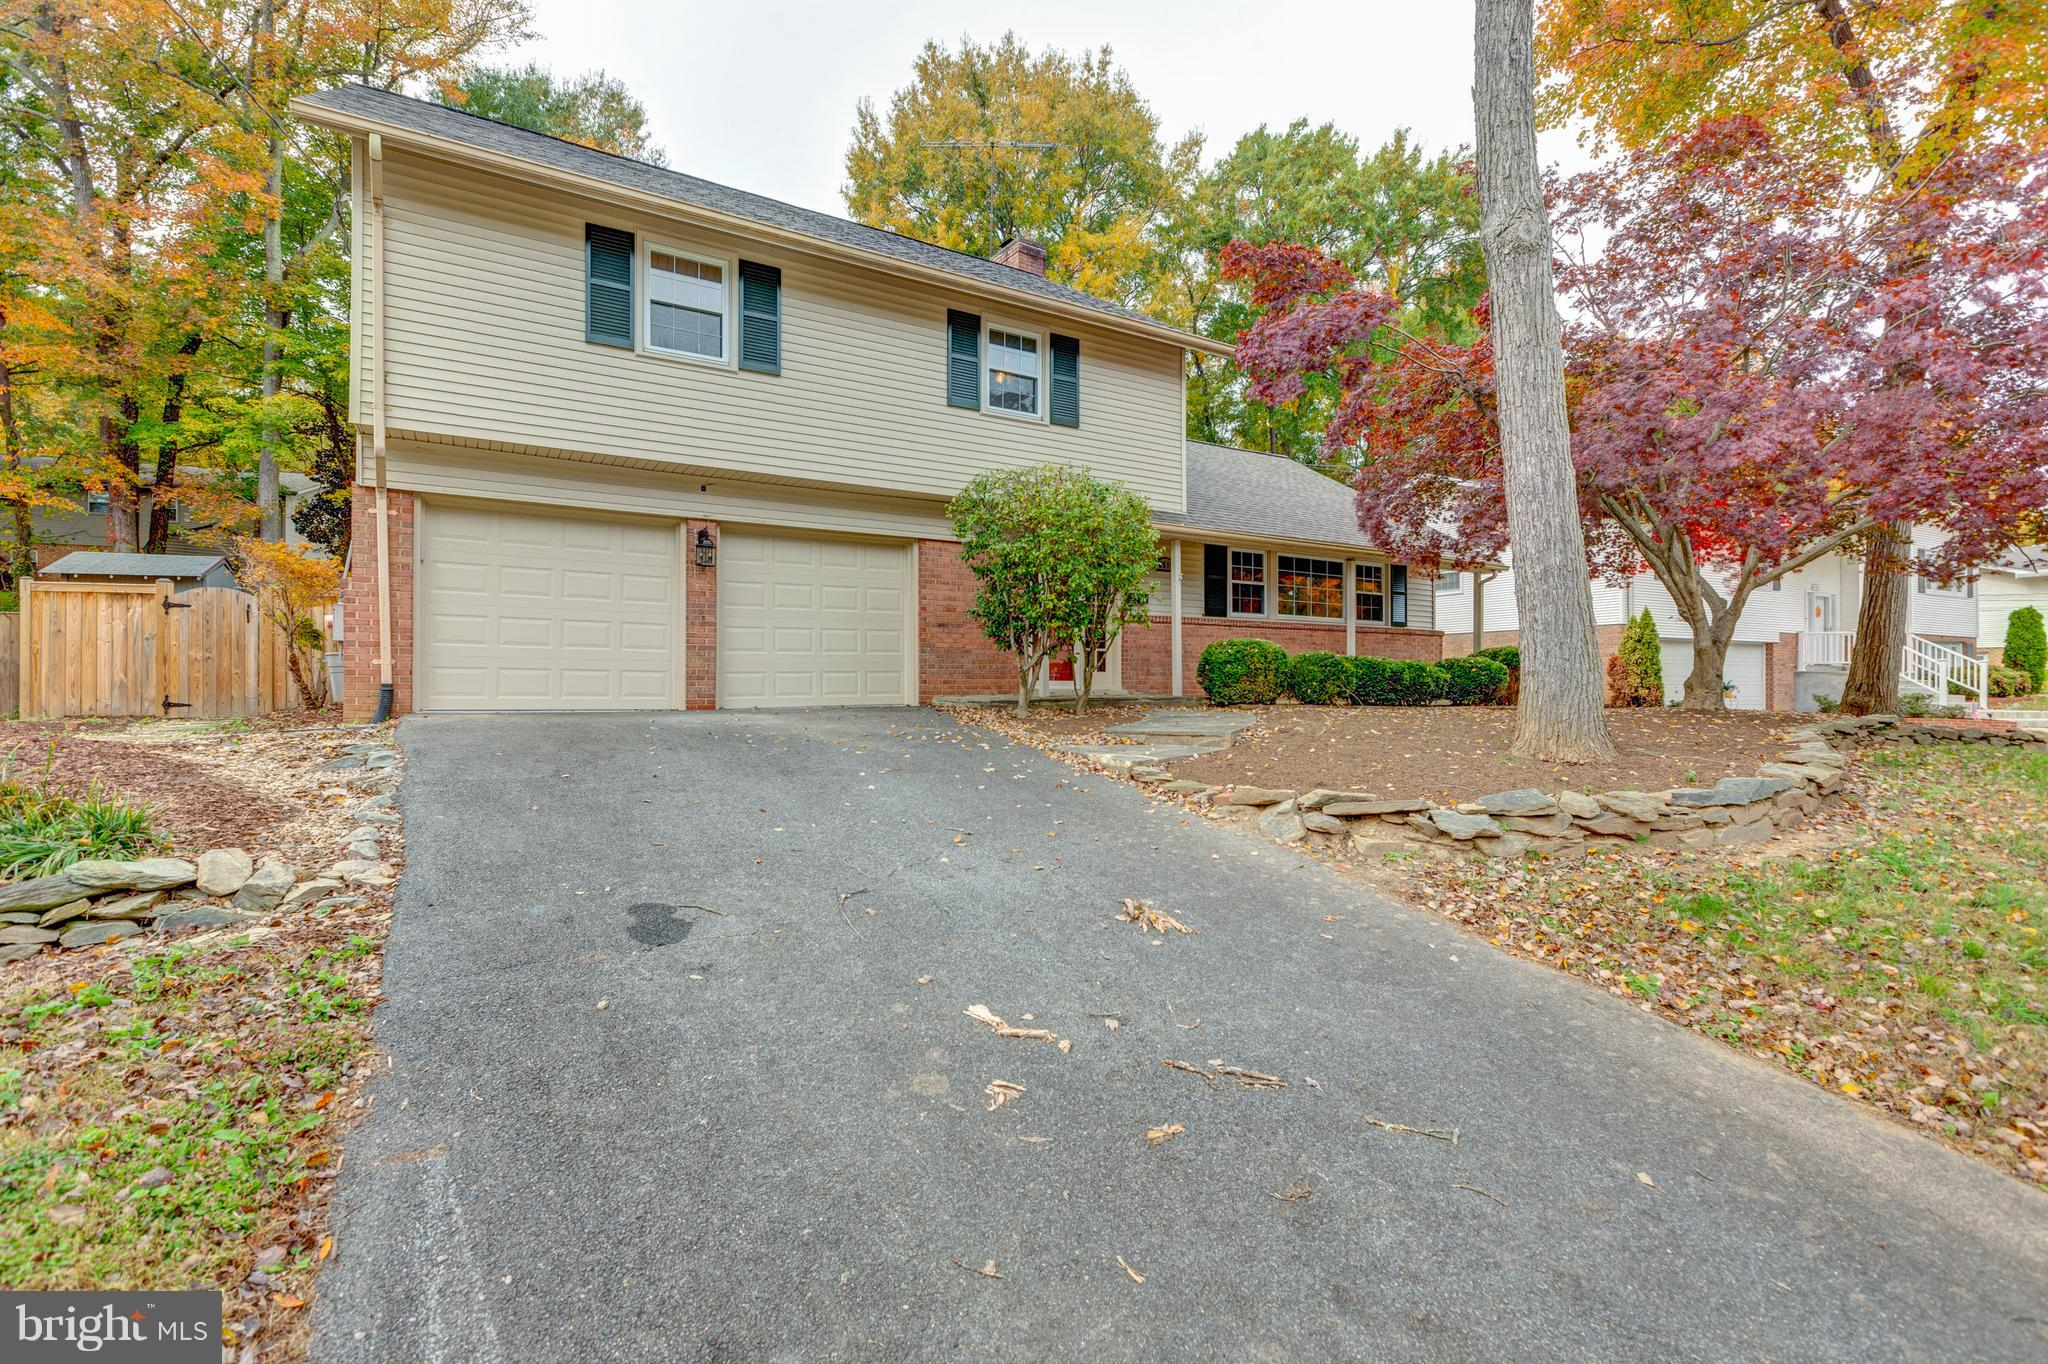 This Open Bright home is ready for you to move into.  It is great for entertaining from the warm hard wood floors to the cool pool and outdoor space. New HVAC, roof and decking around the pool. Great home sure to please.